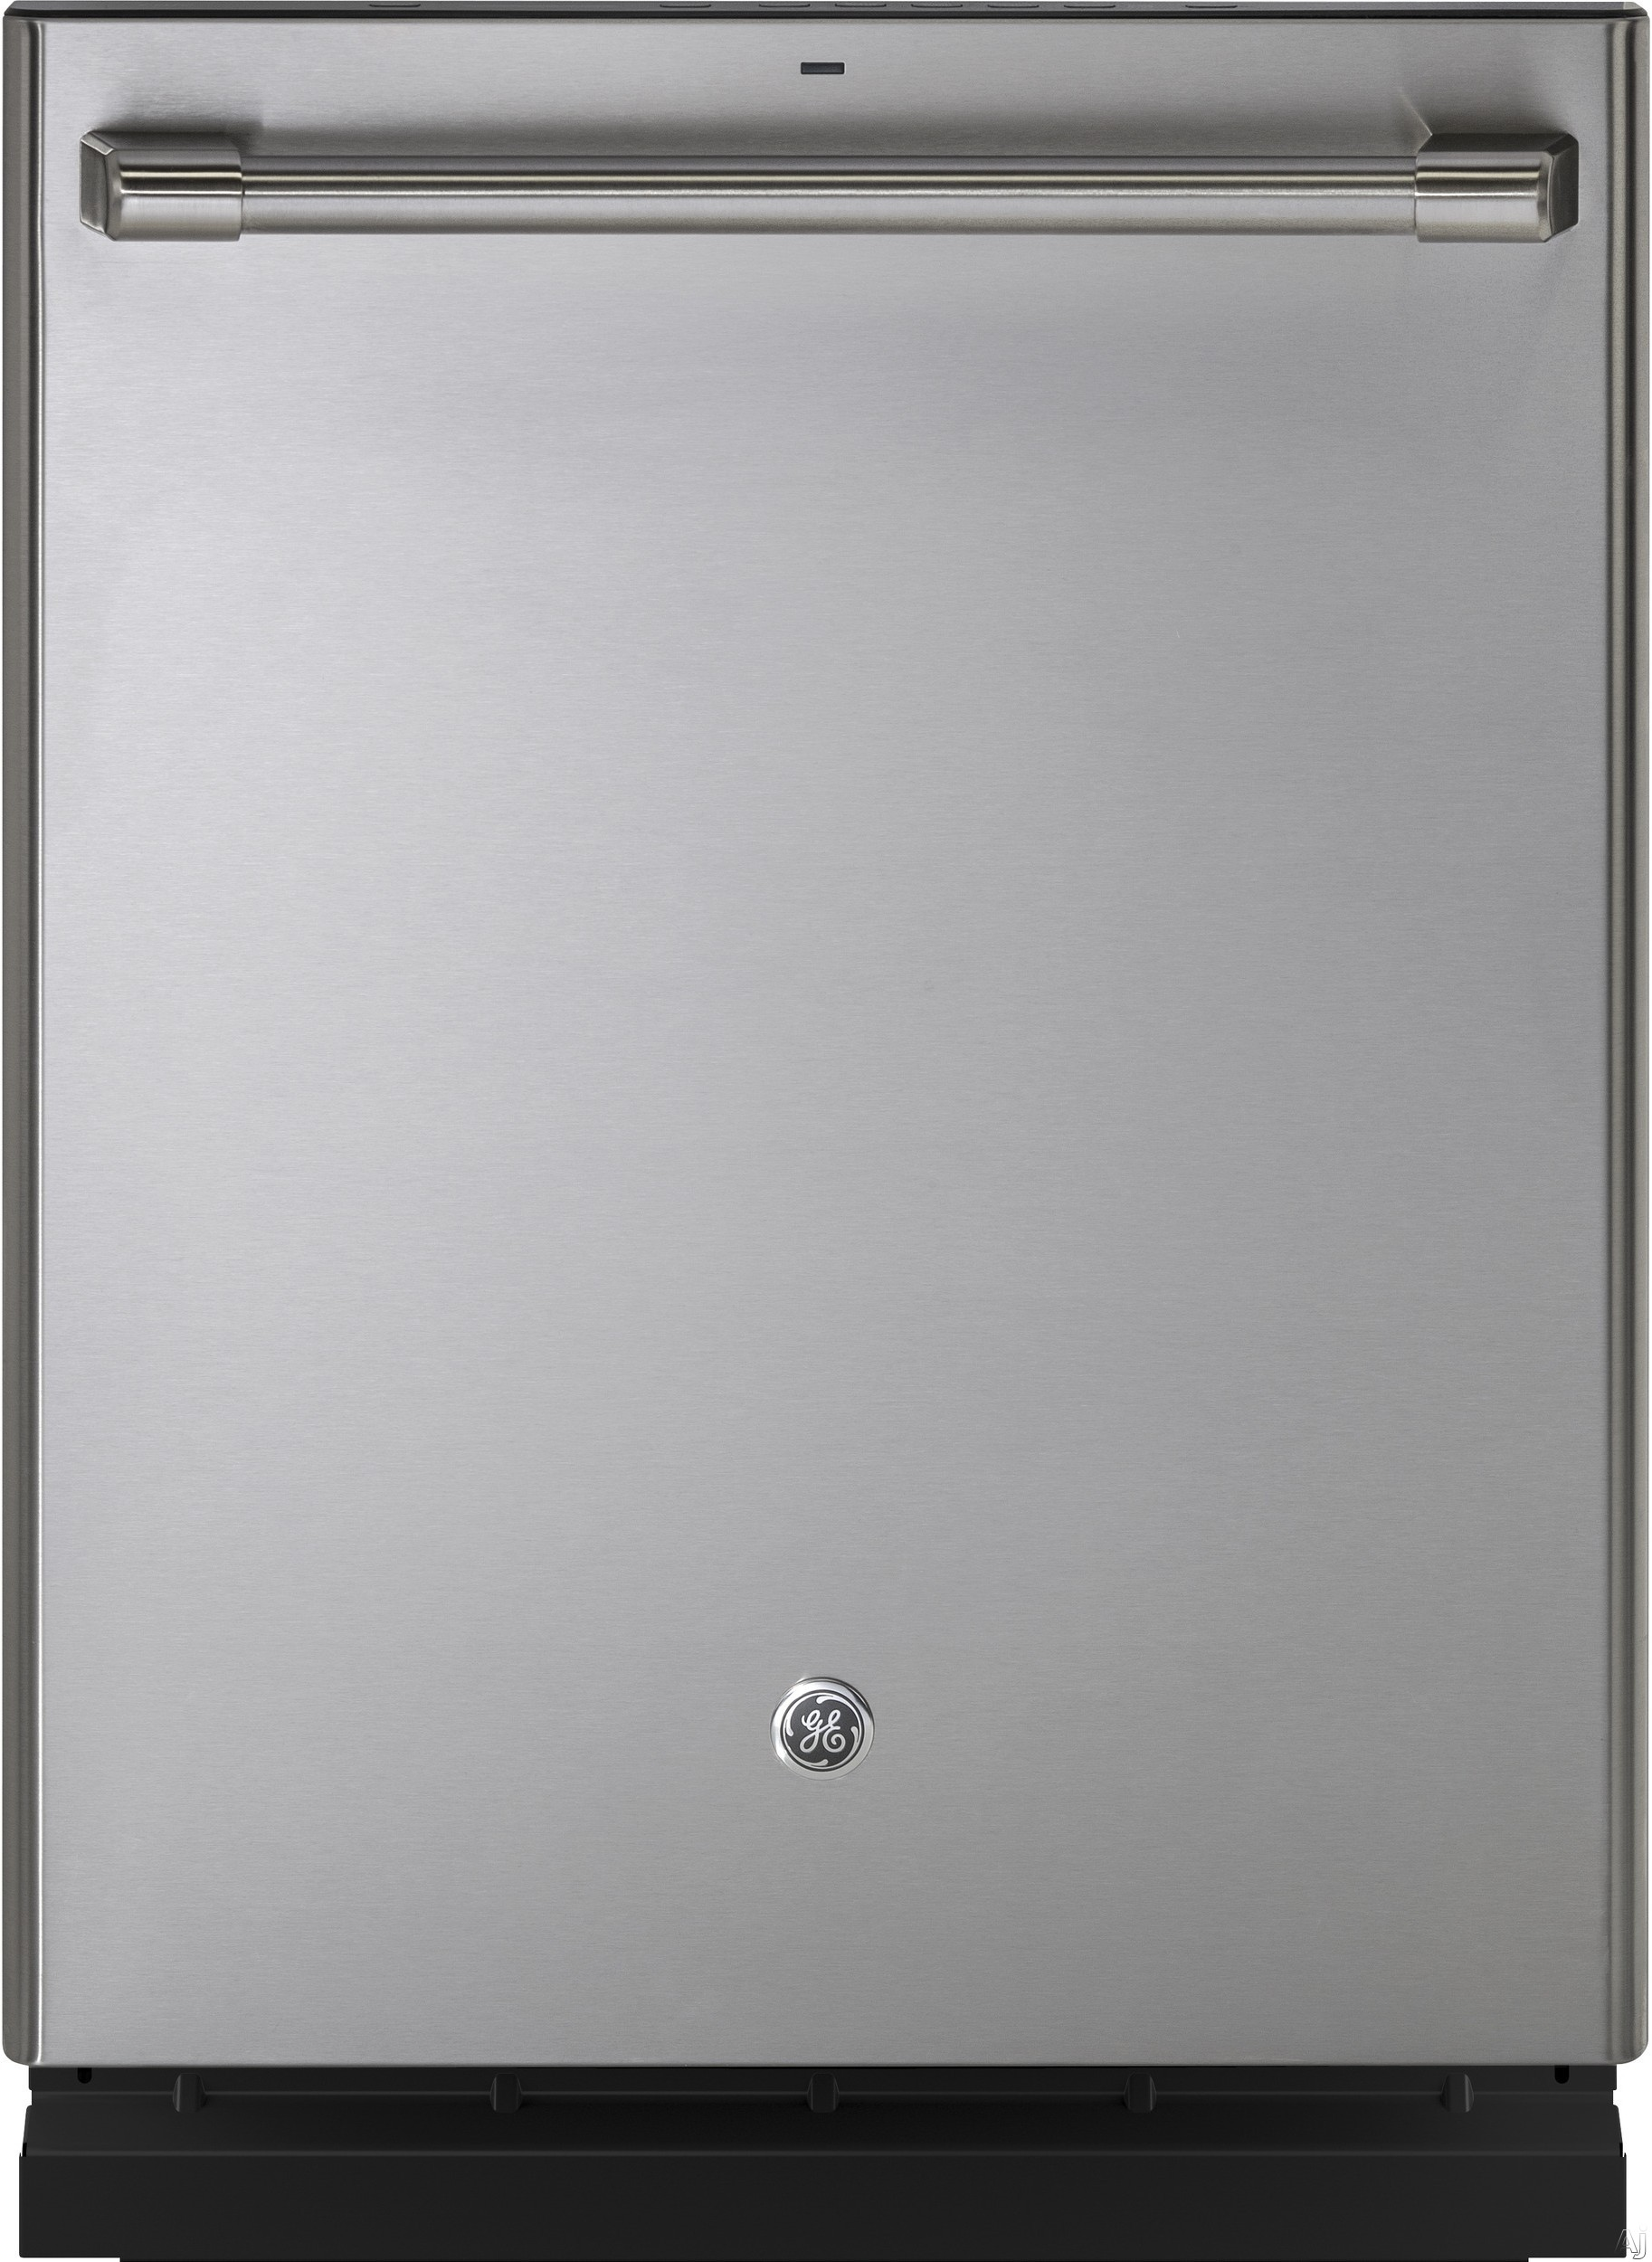 GE Cafe Series CDT835SSJSS 24 Inch Fully Integrated Dishwasher with 5 Wash Cycles 16 Place Setting Capacity Hard Food Disposer Adjustable Tines Bottle Jets Silverware Jets Side Jets Wash Zones Nylon R